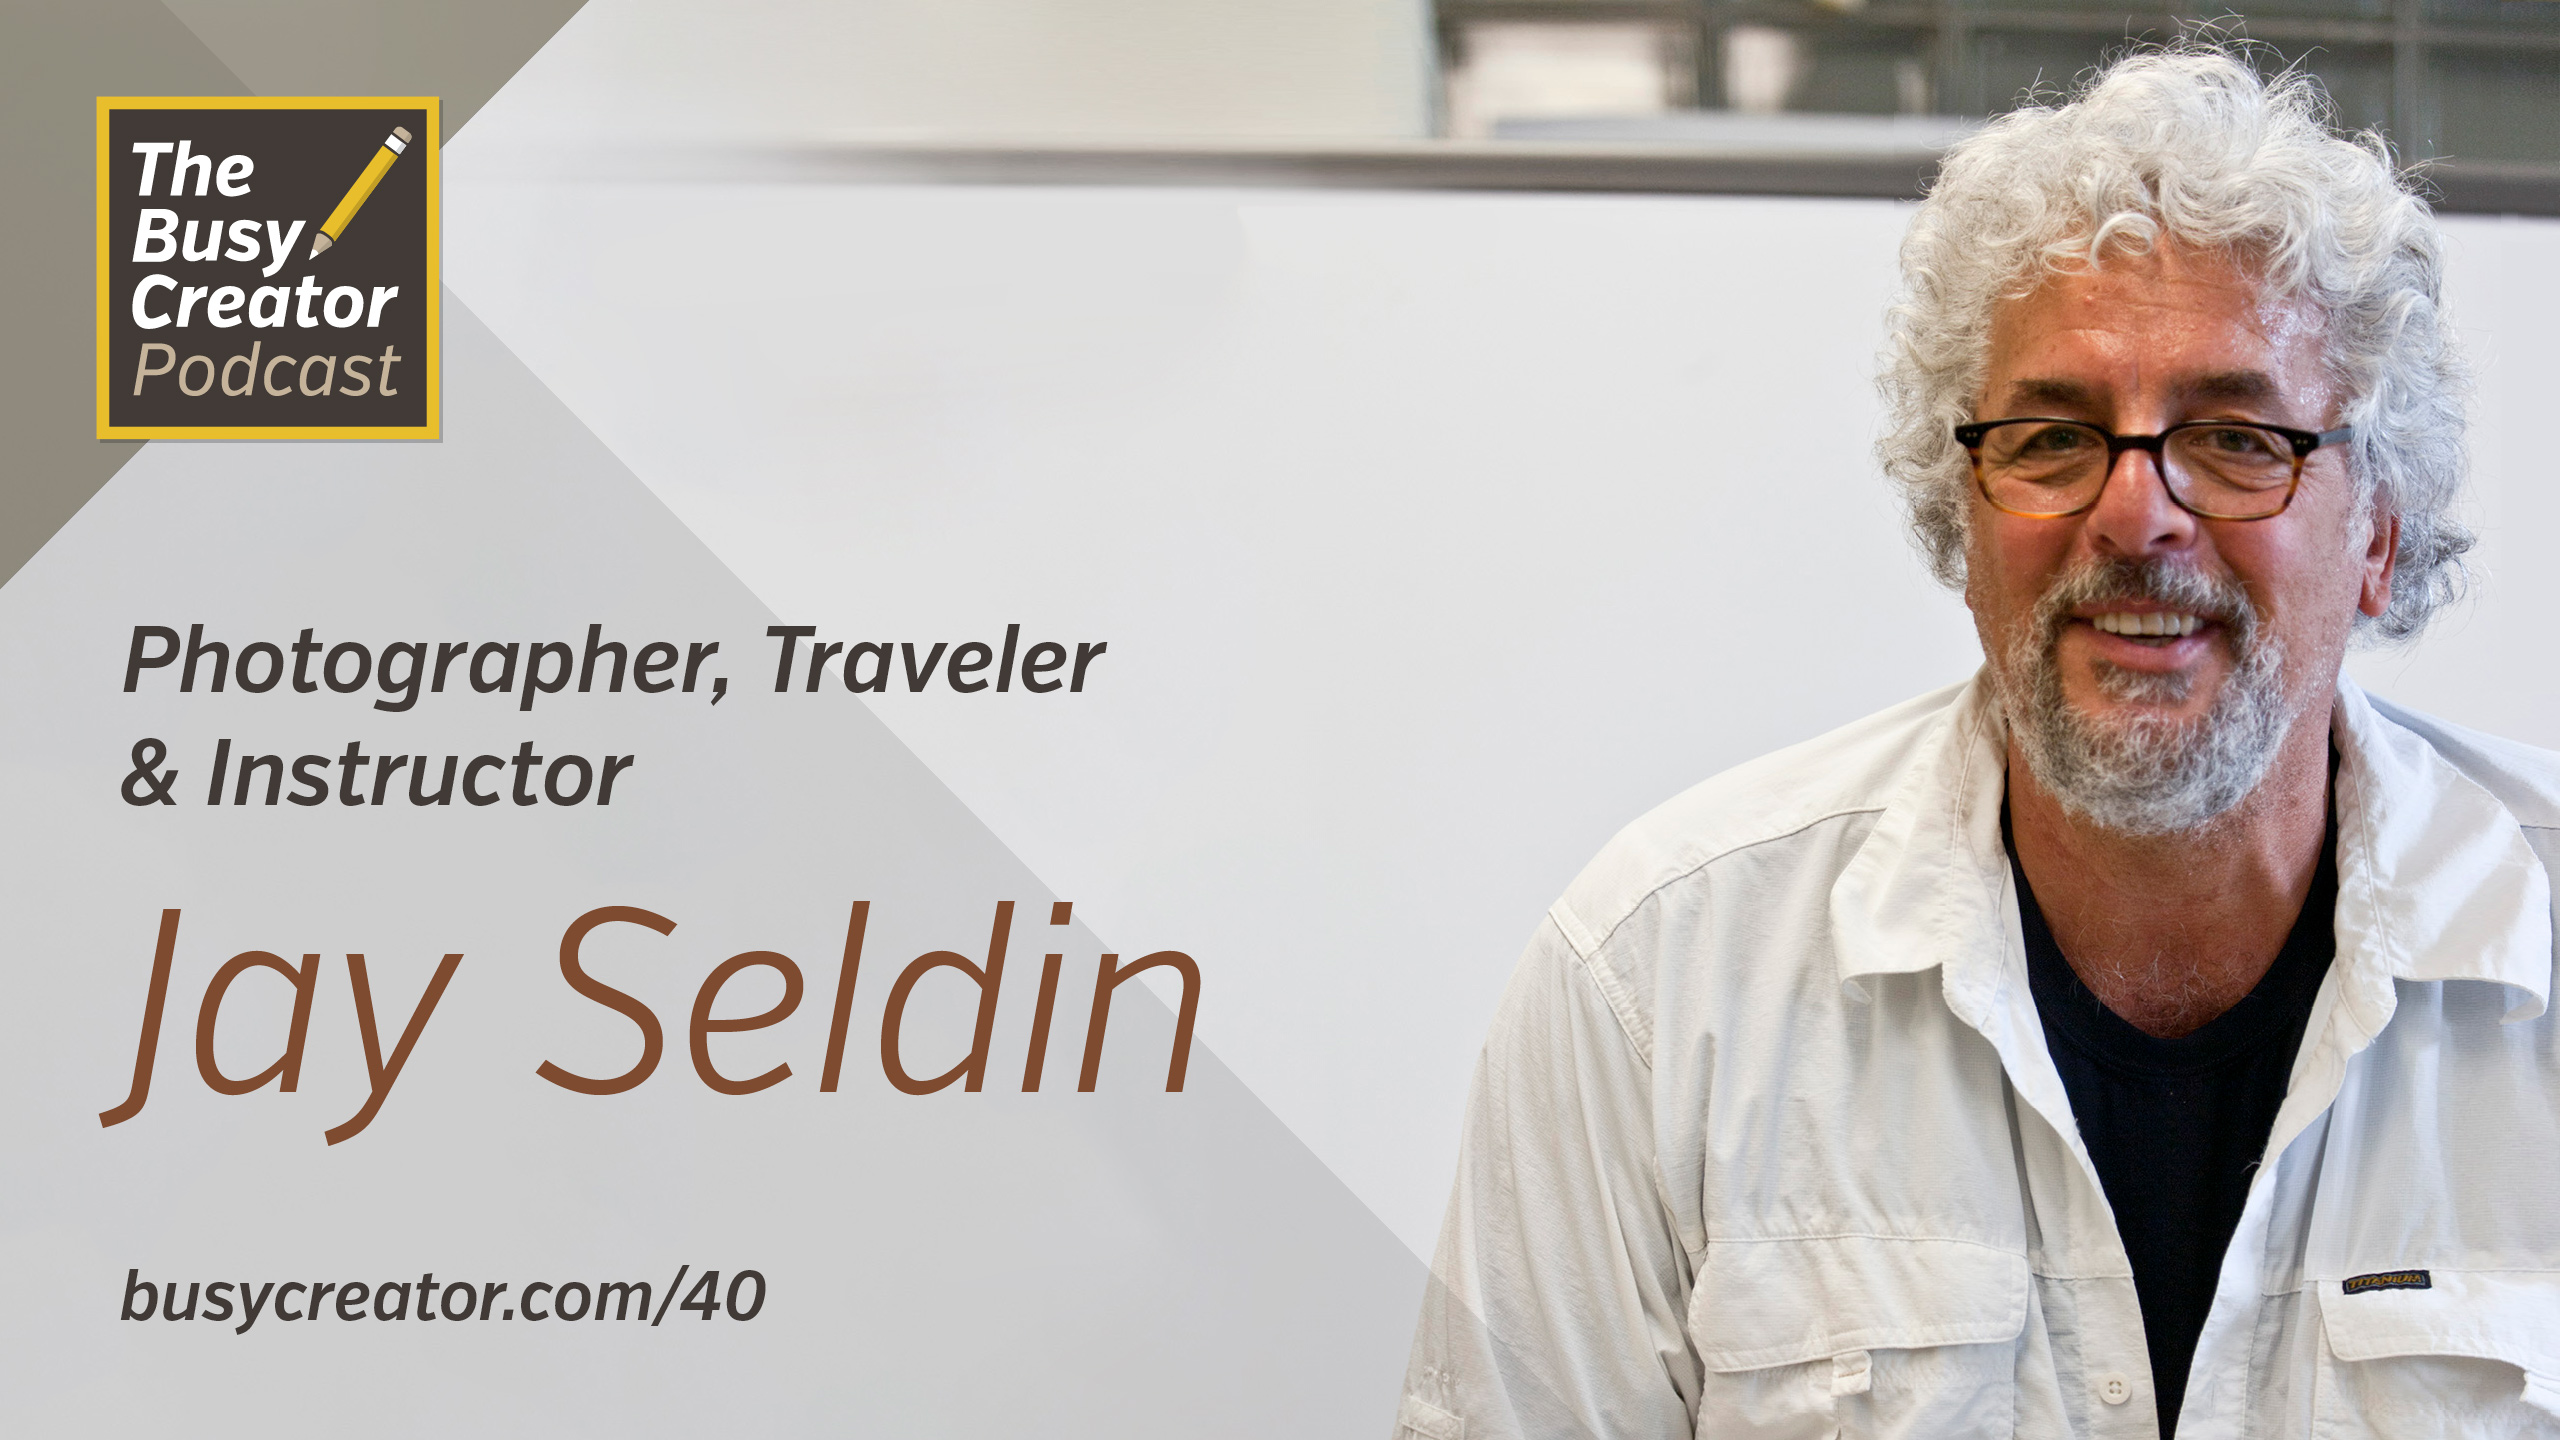 Photographer, Instructor & World Traveler Jay Seldin Shares His Creative Journey